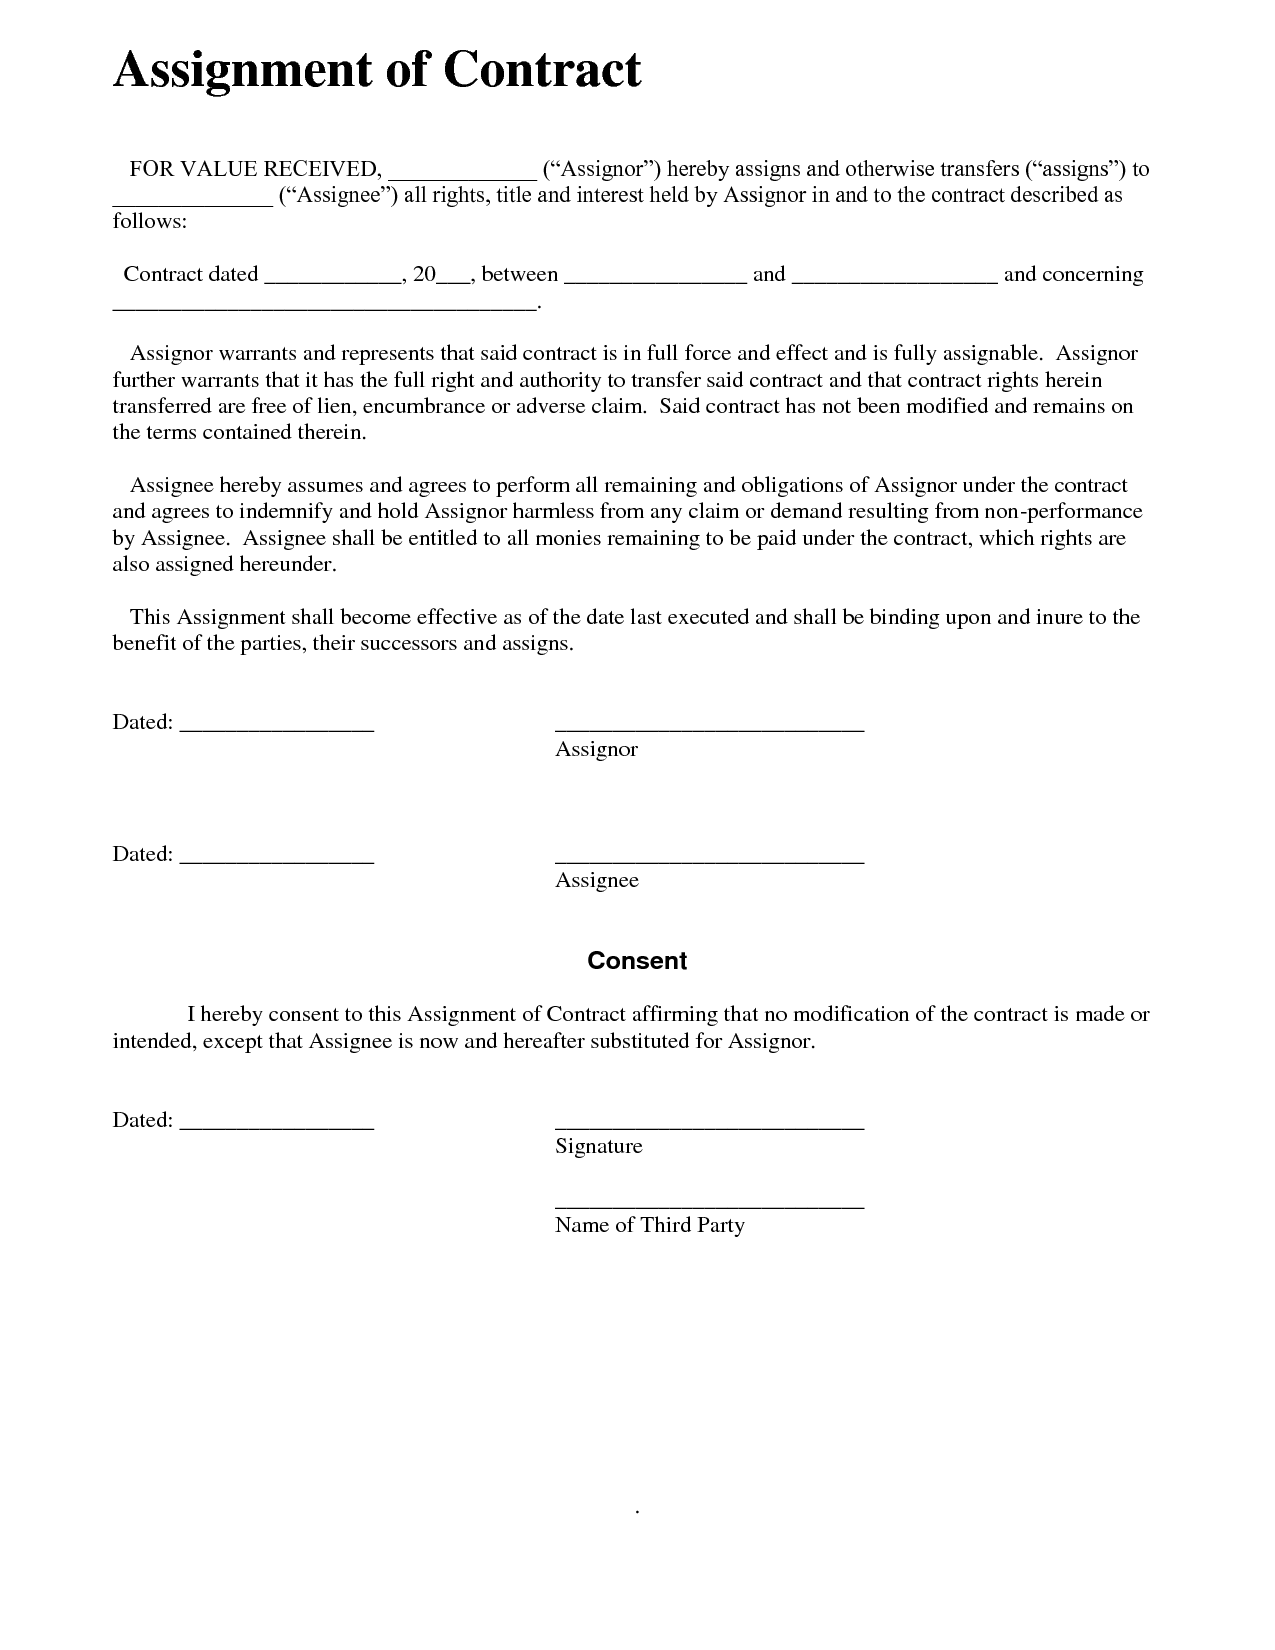 Assignment of agreement